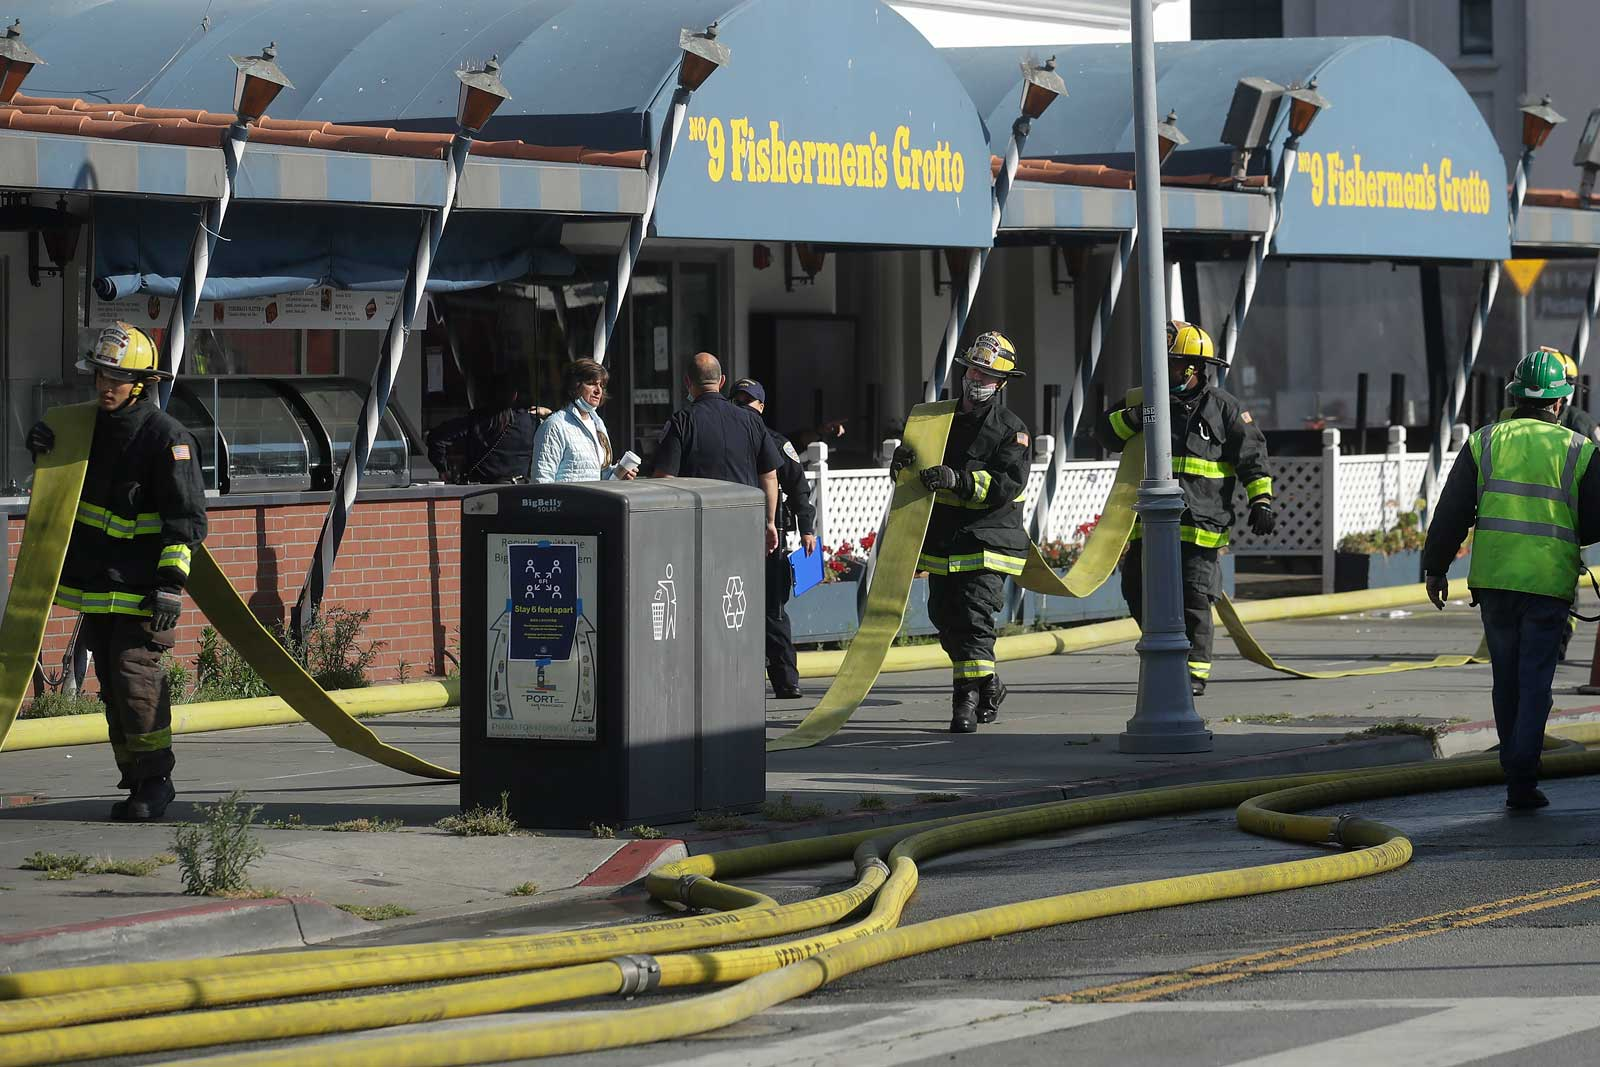 Firefighters carrying hose